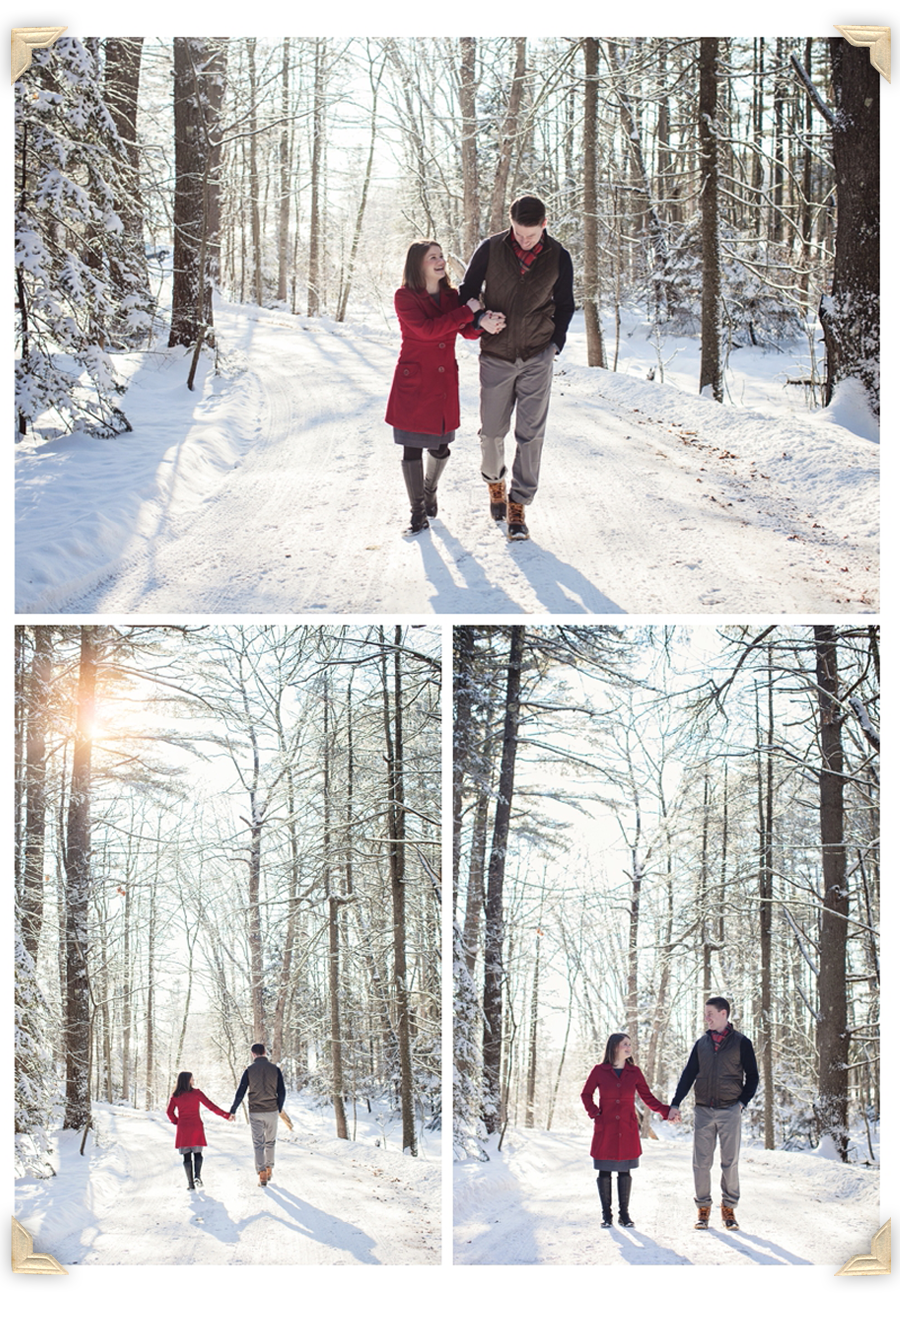 Freeport_Maine_WolfesNeck_Engagement_Photographer-004